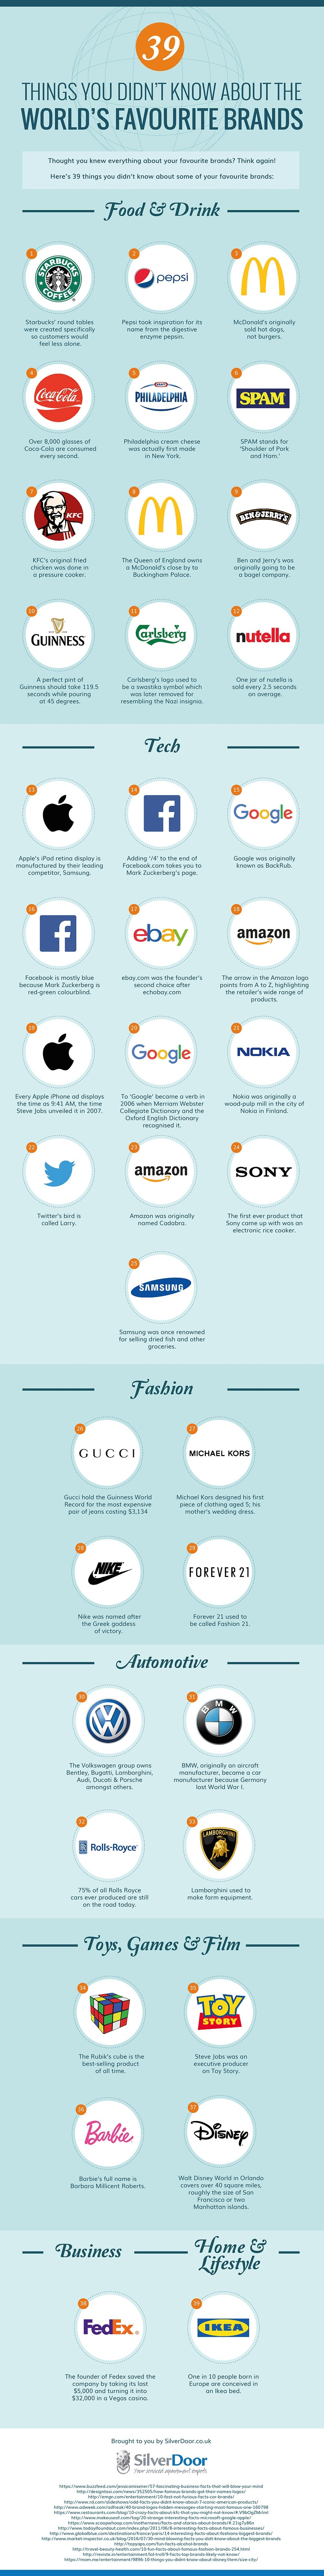 39 Things You Didn't Know About The World's Favourite Brands - #Infographic